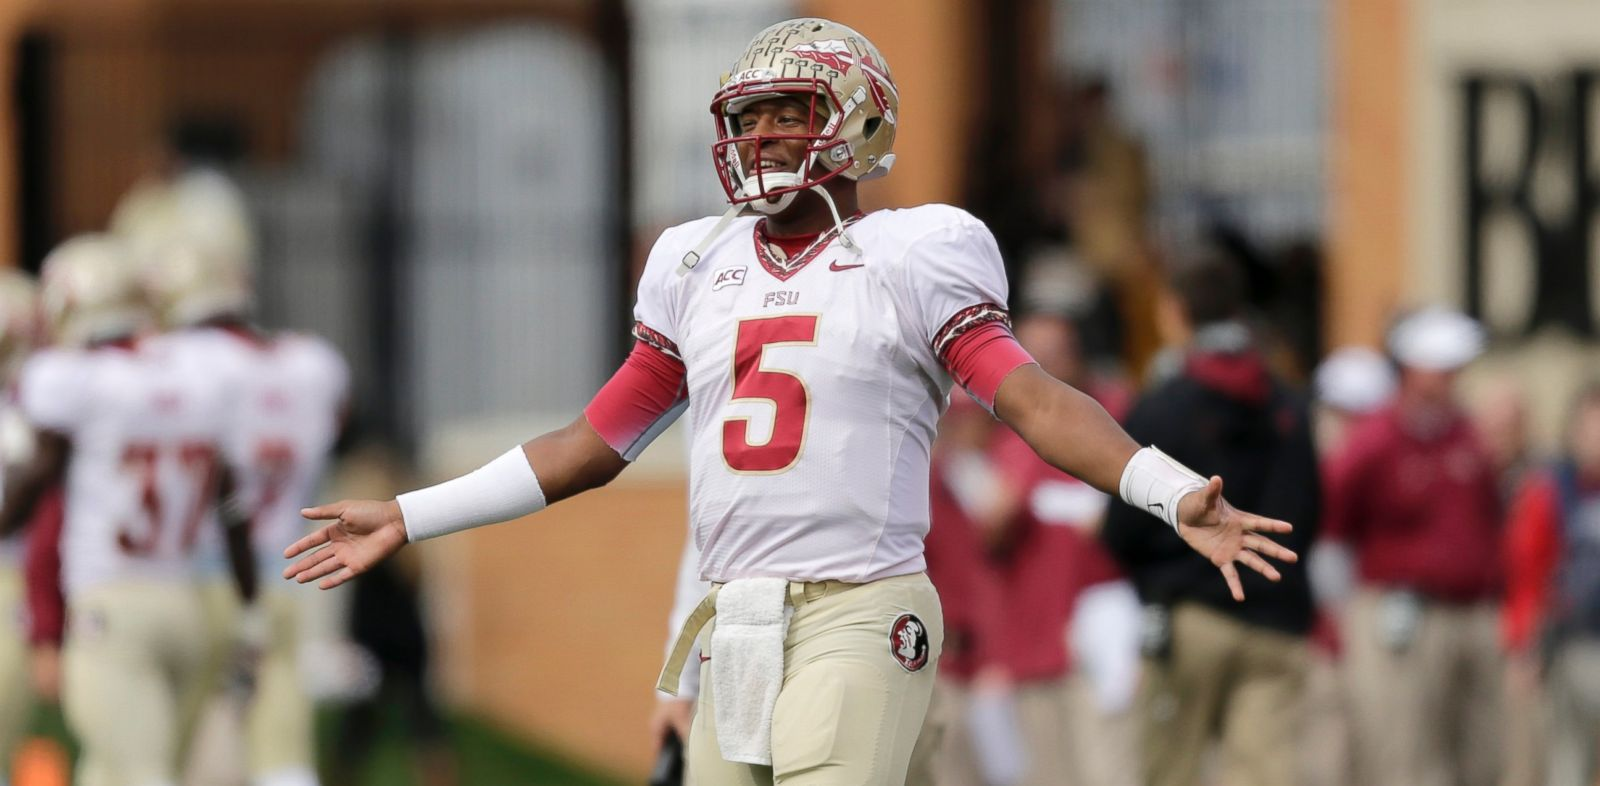 PHOTO: Florida State quarterback Jameis Winston watches on the sidelines as his team plays Wake Forest in the first half of an NCAA college football game in Winston-Salem, N.C., on Nov. 9, 2013.